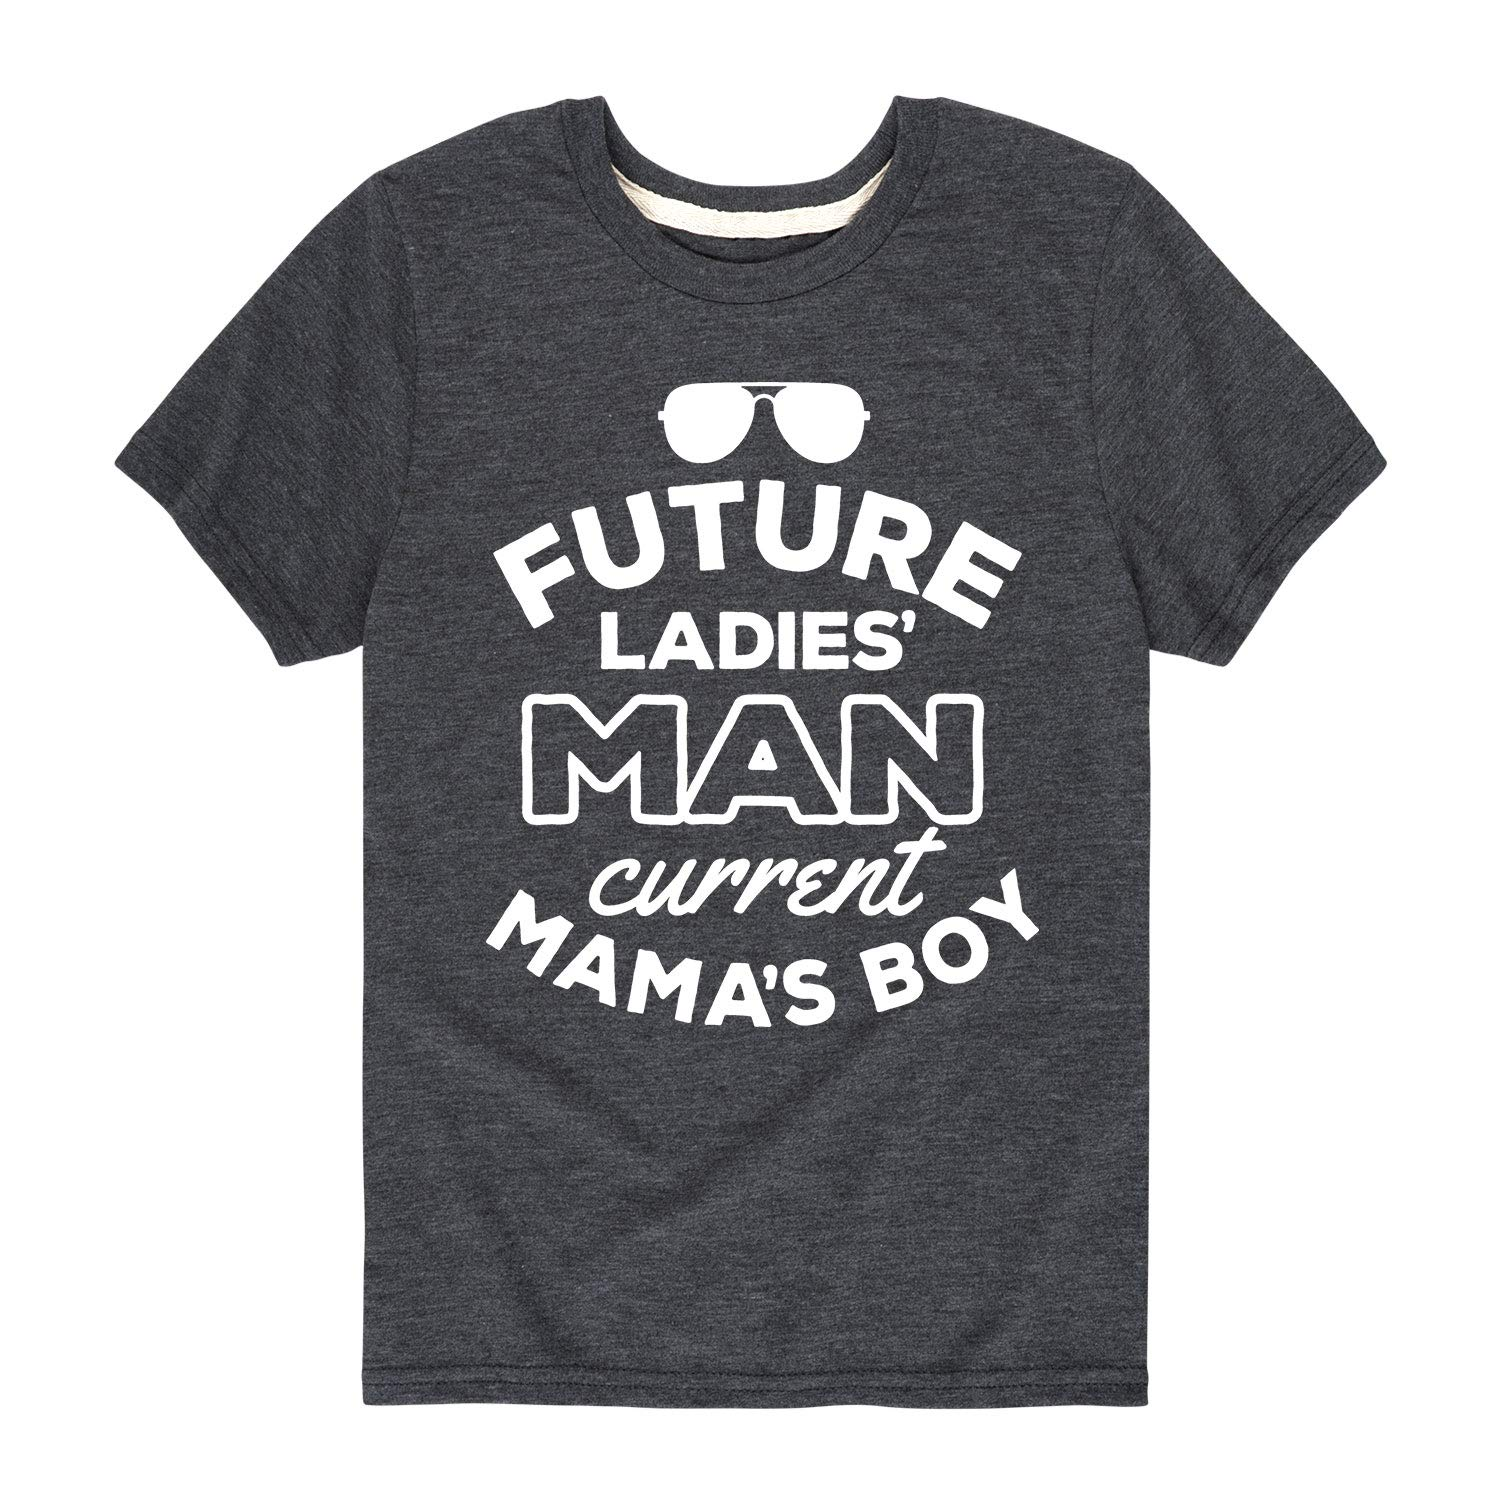 Toddler Short Sleeve Tee Instant Message Future Ladies Man Mamas Boy